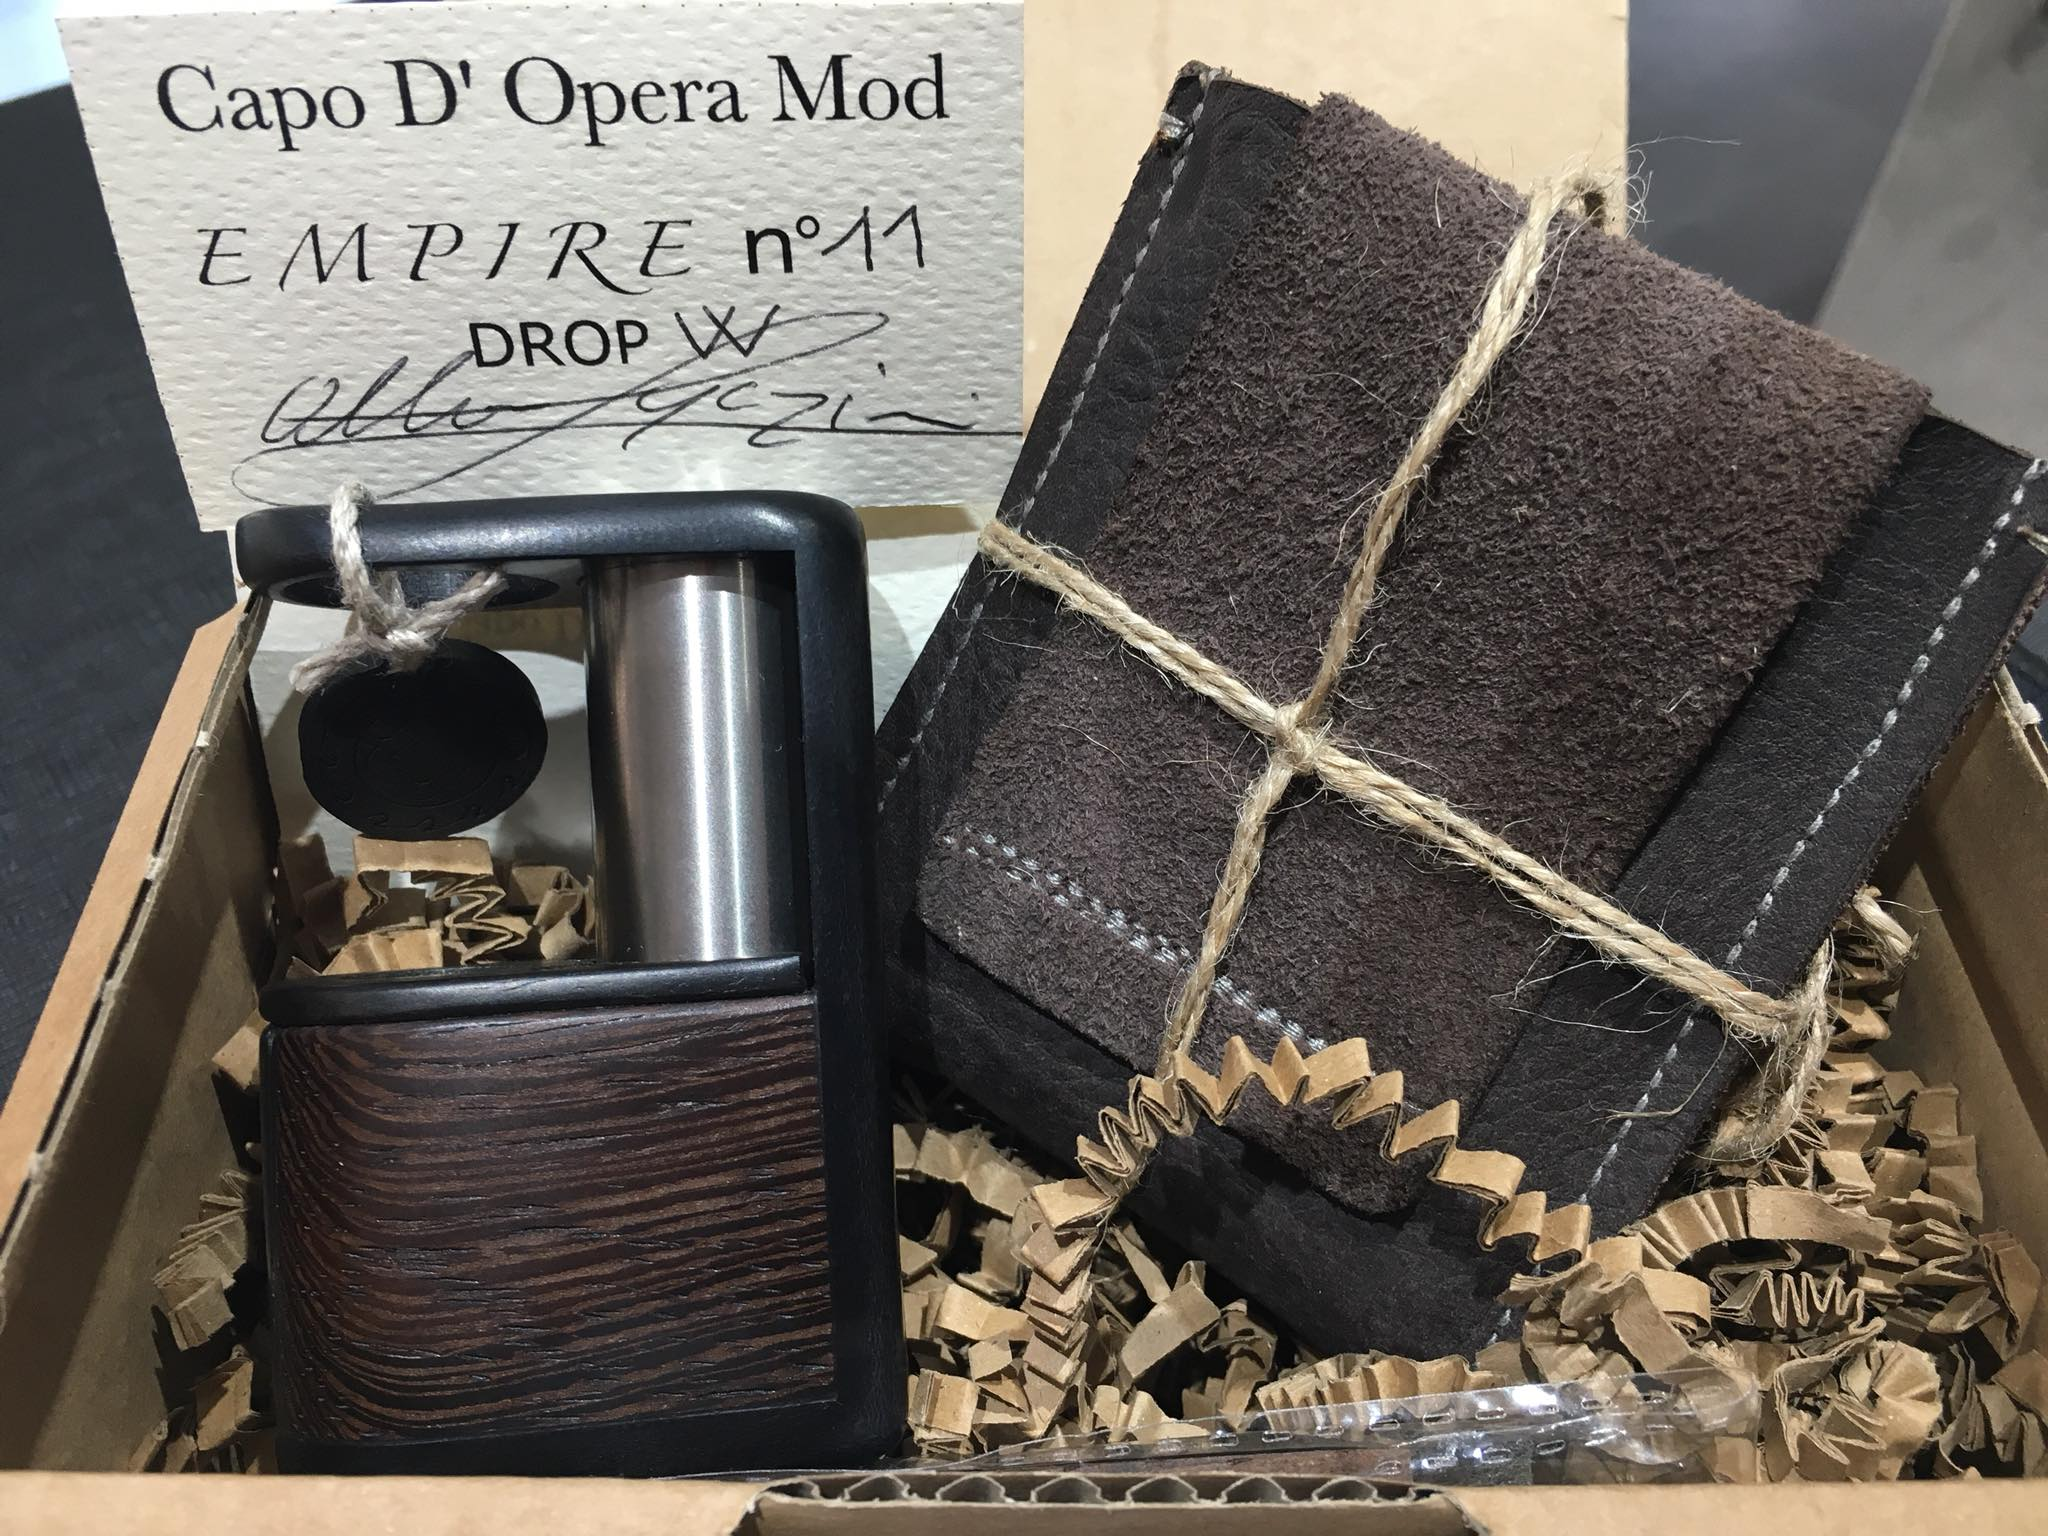 Empire Box by Capo D'Opera Mod modello DROP W